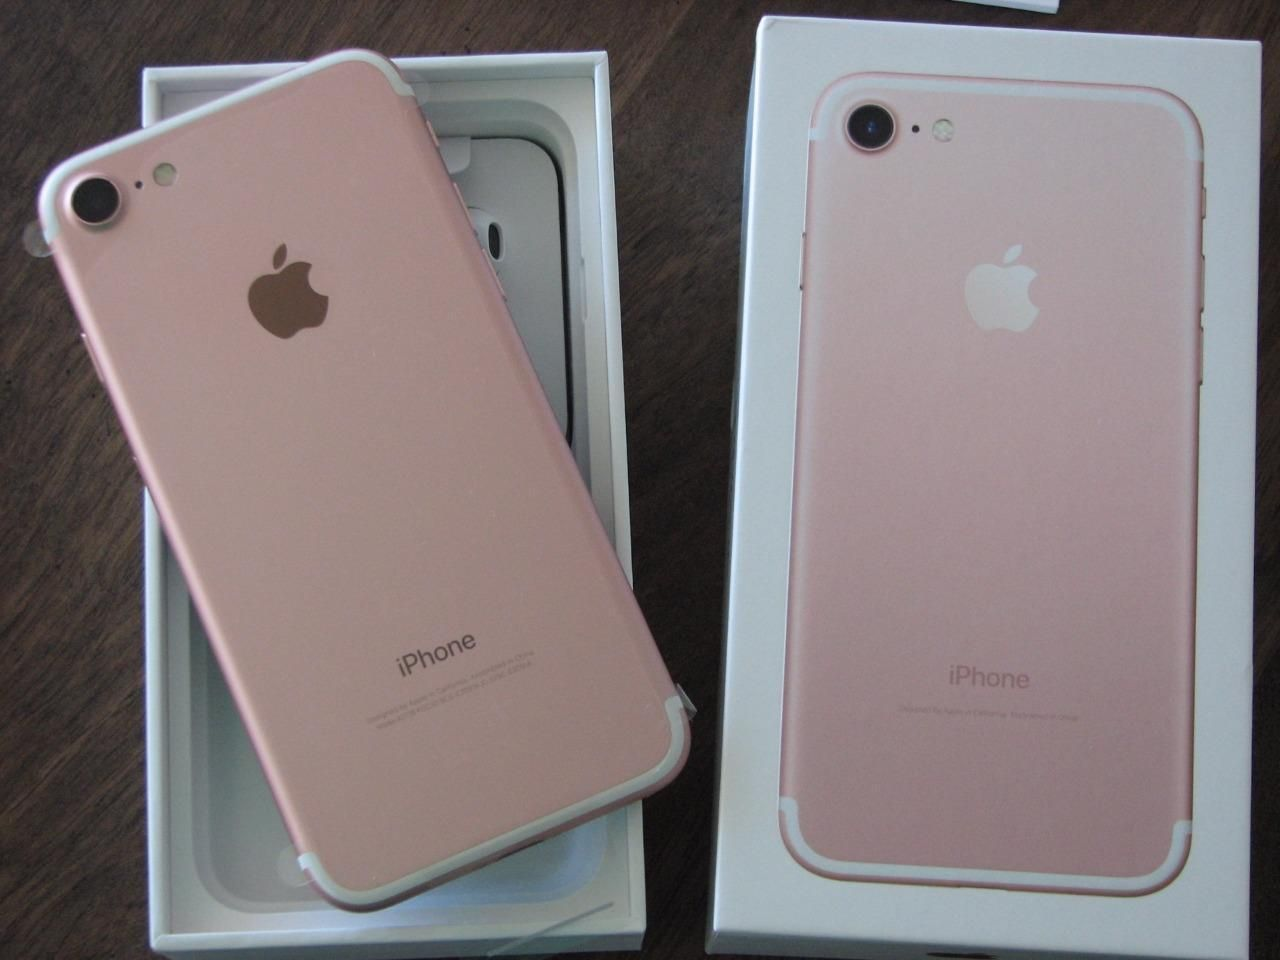 LATEST BRAND NEW APPLE iPHONE 7 128GB ROSE GOLD UNLOCKED